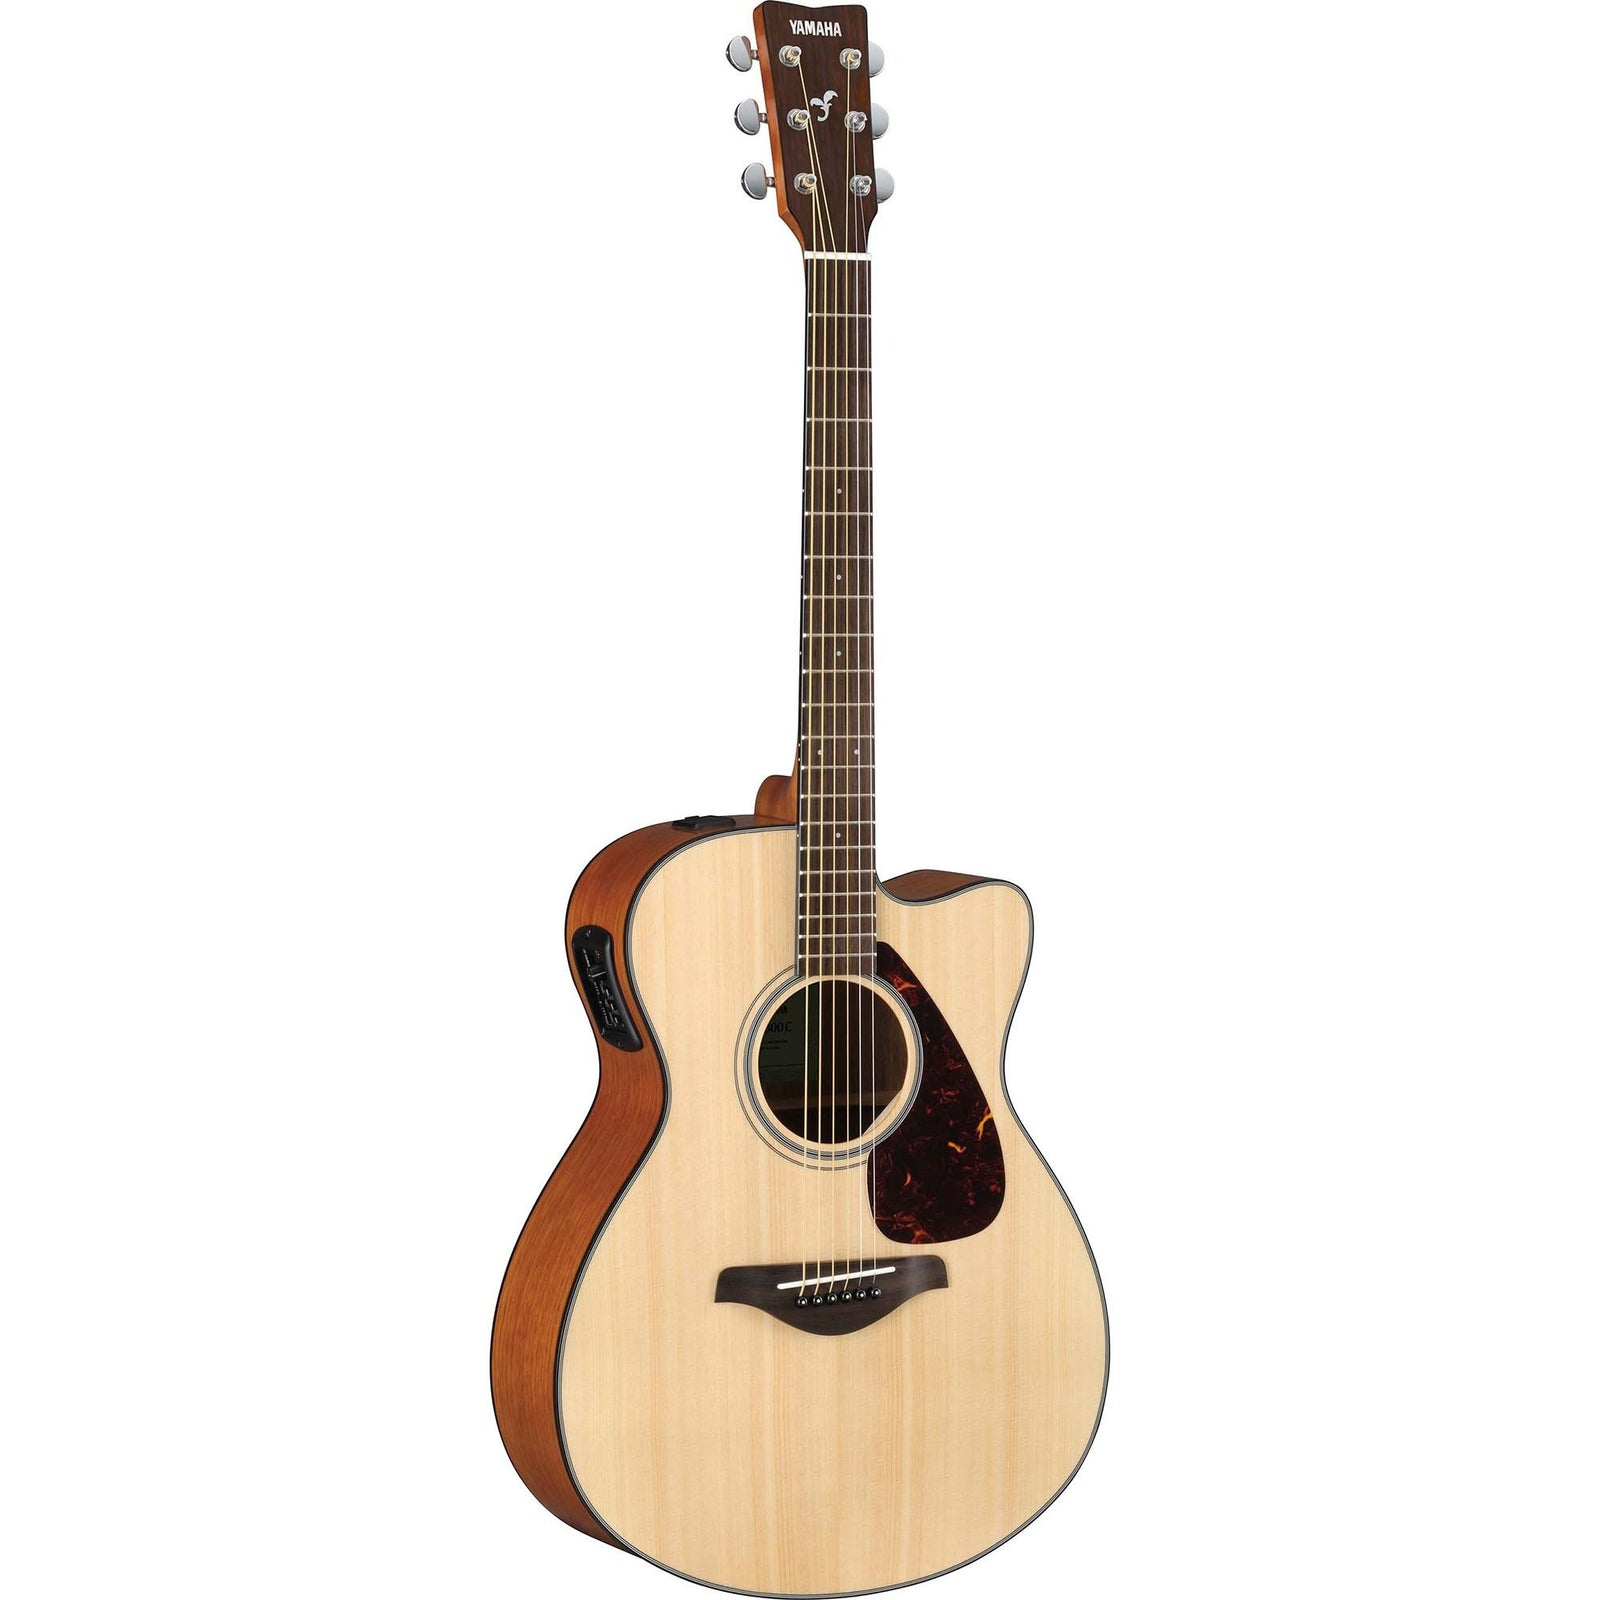 Yamaha FSX800C Solid Top Small Body Cutaway - Natural